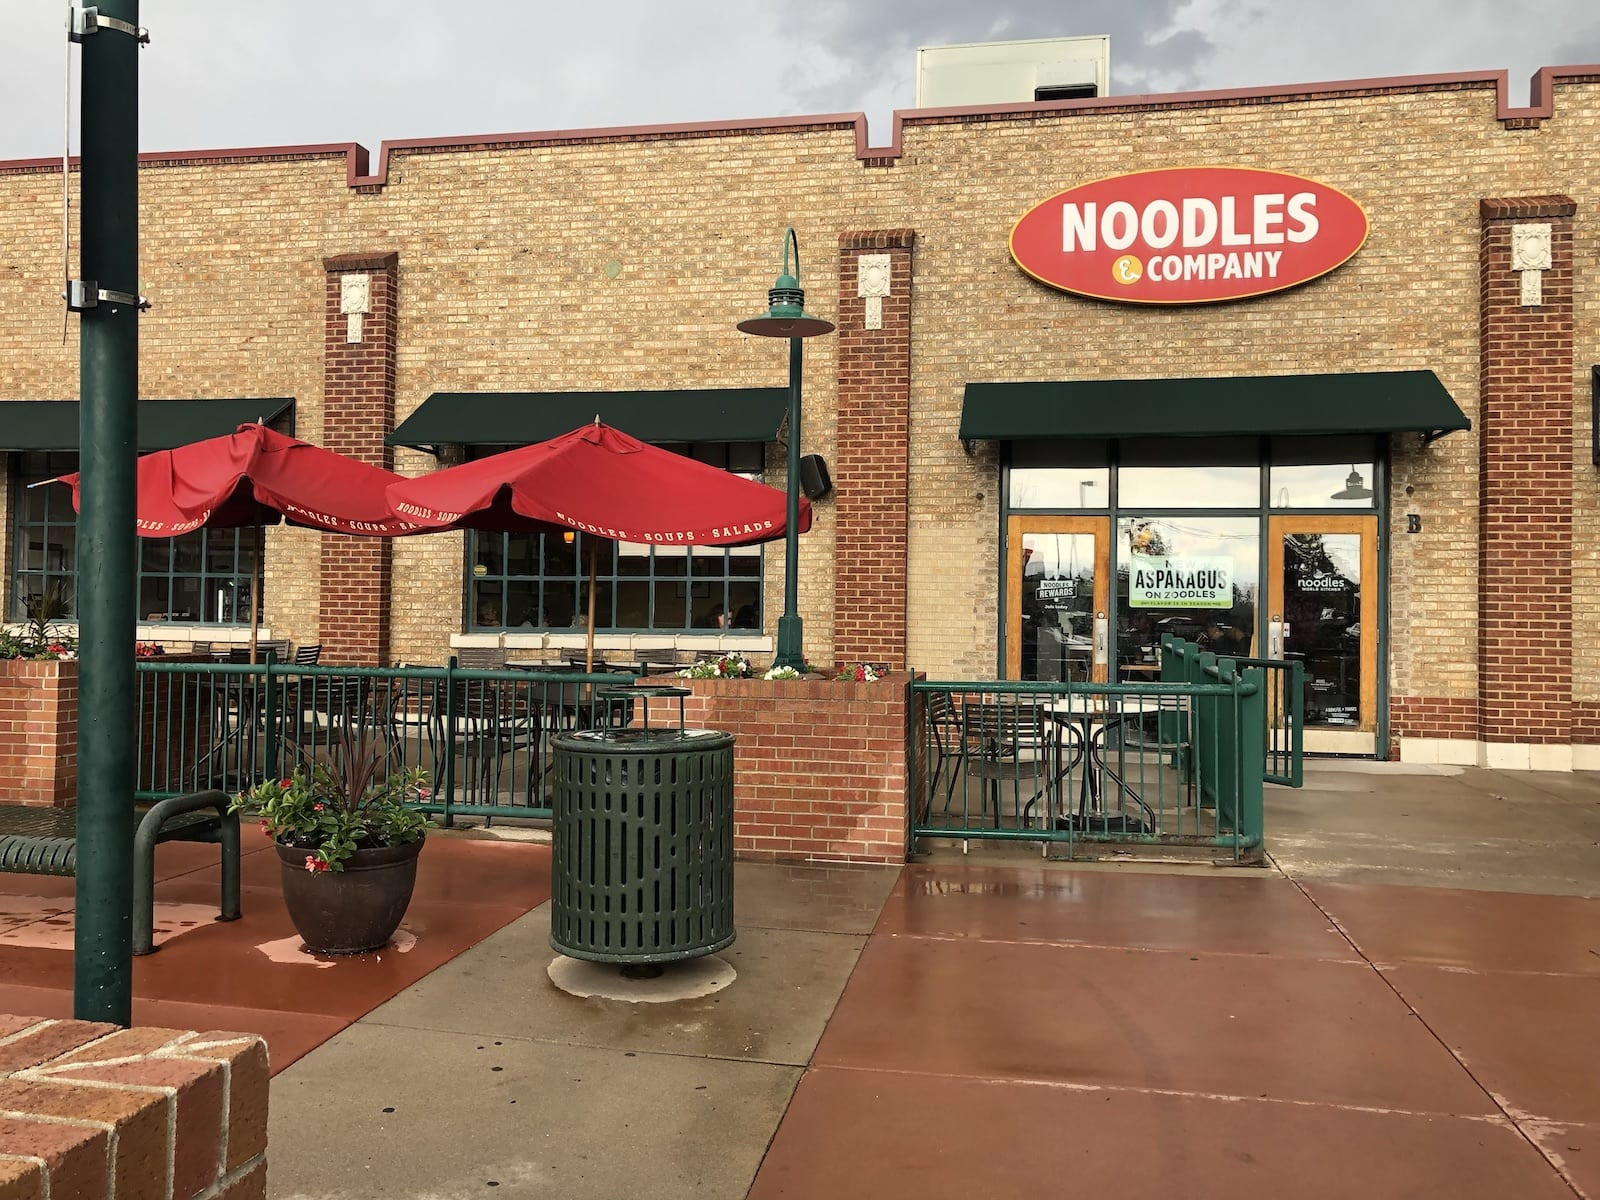 Noodles & Company in Thornton